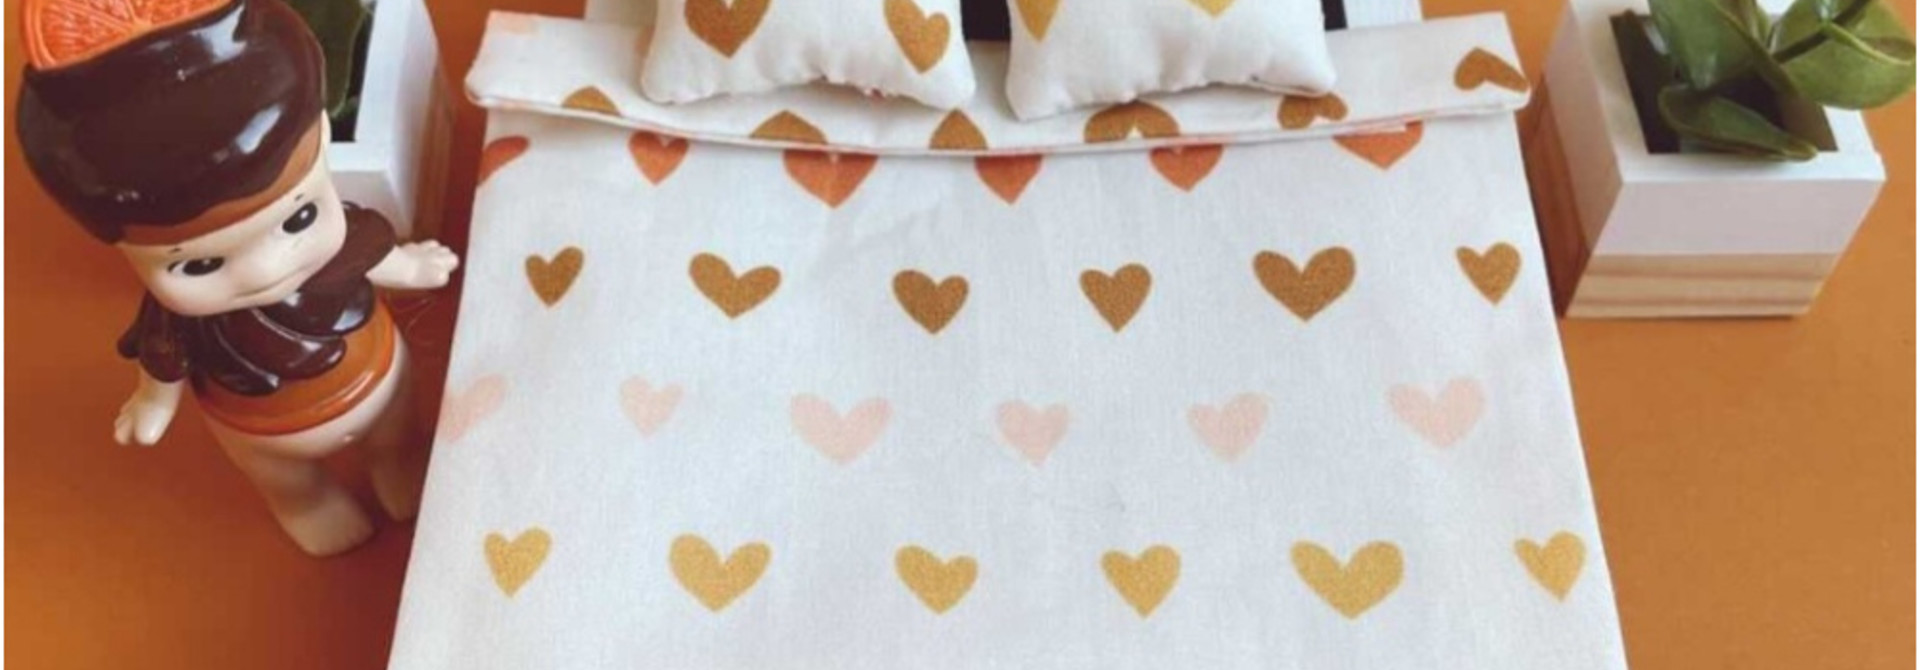 Bedding Dollhouse Double bed Hearts